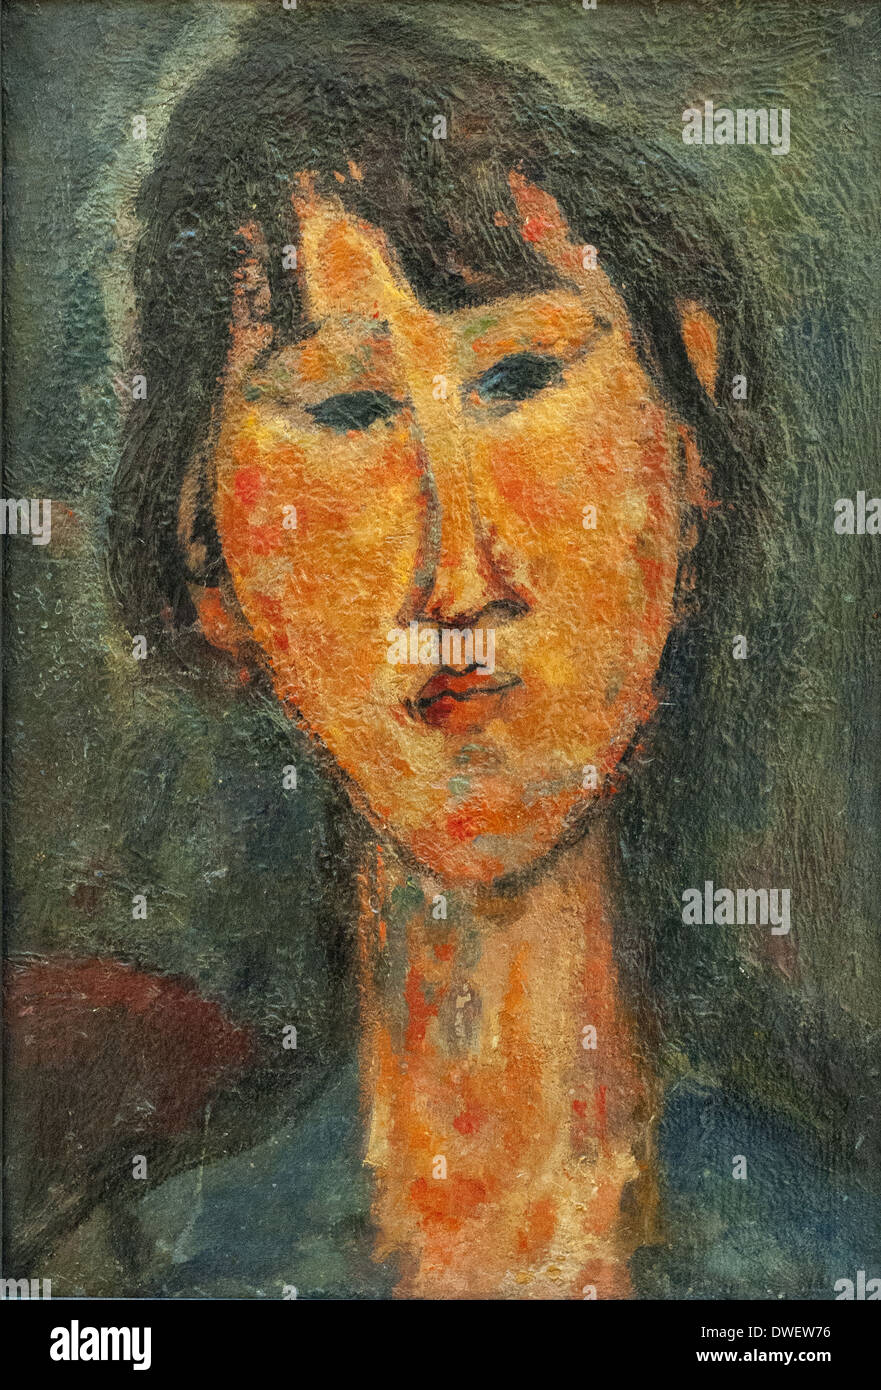 Amedeo Modigliani - Woman Head - 1920 - Museum of Modern Art Paris - Stock Image